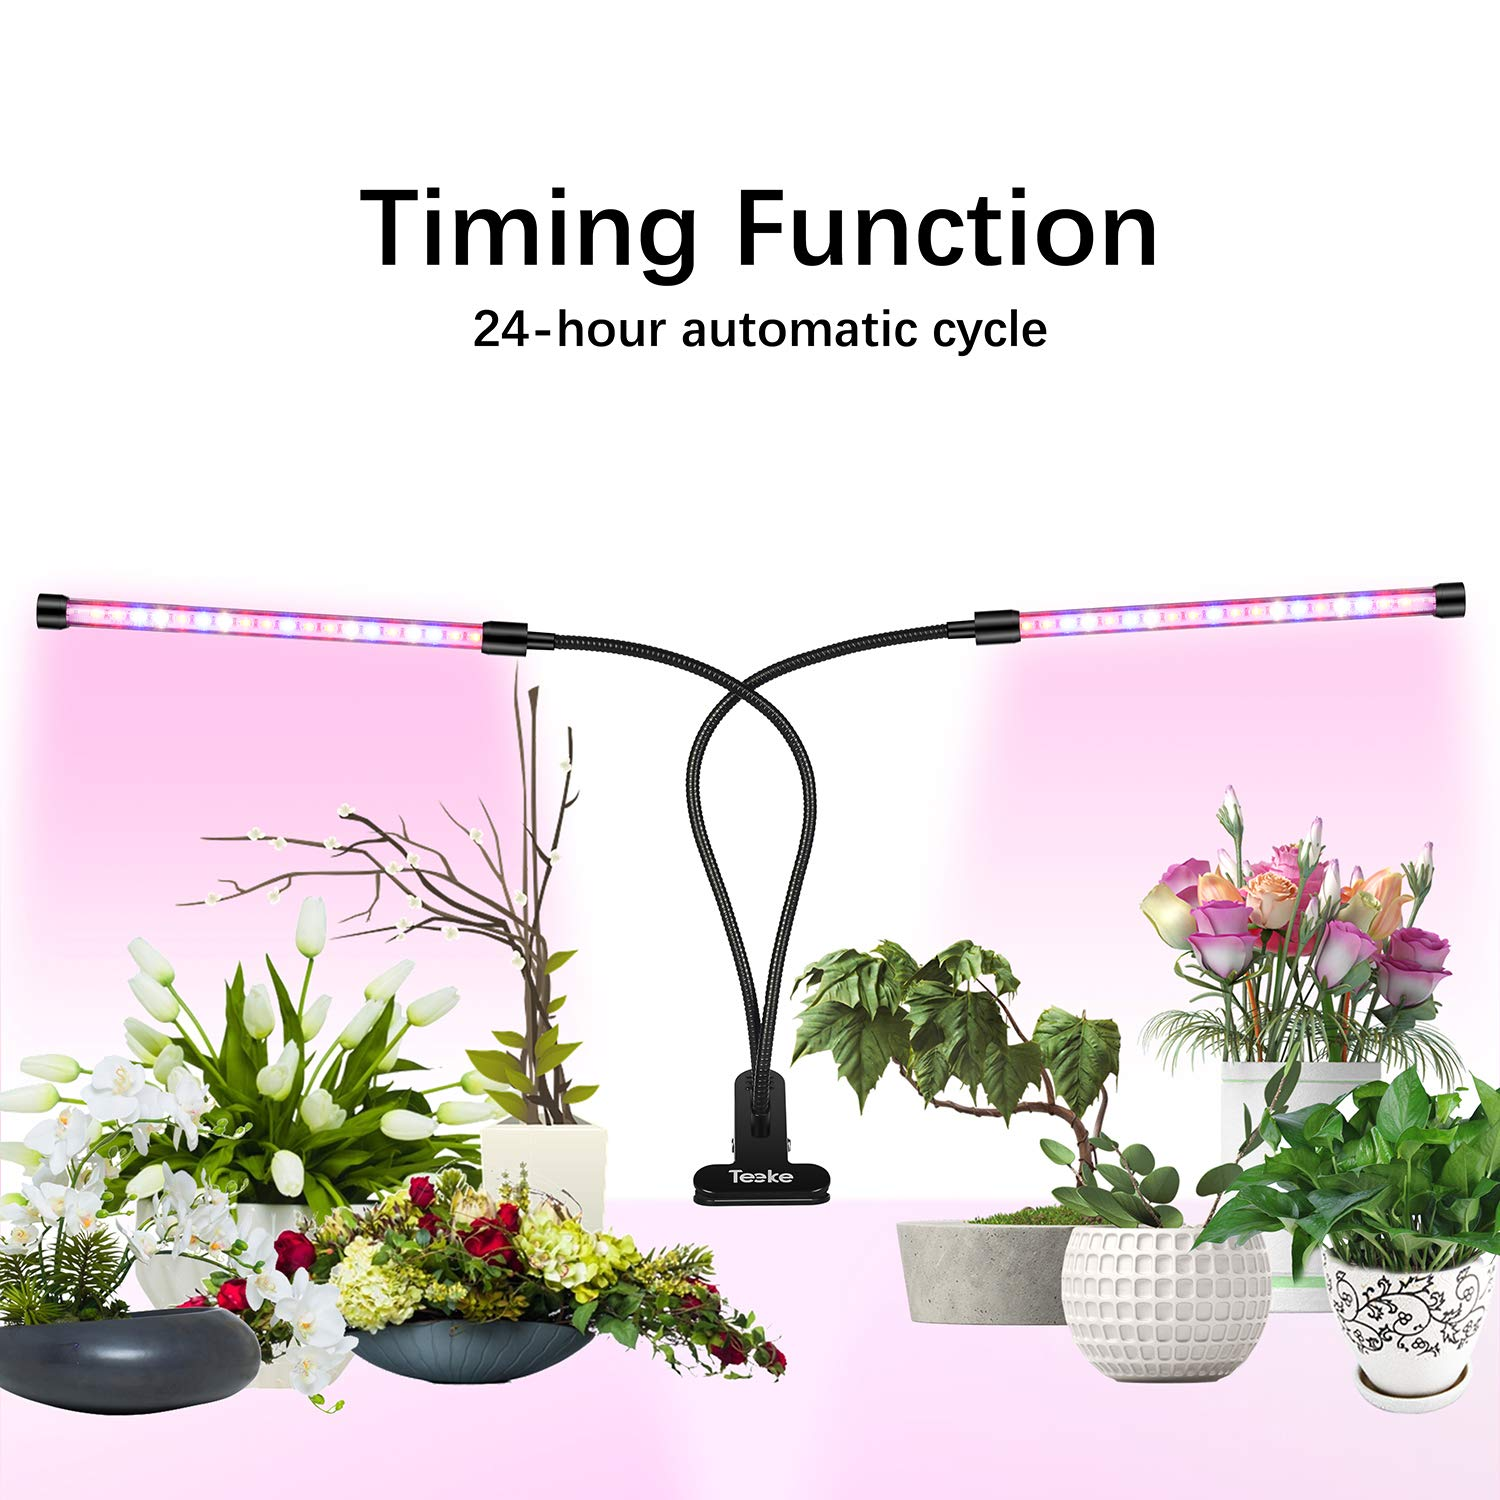 LED Grow Light Bulb for Indoor Plants,Teeke 20W LED 10 Dimmable Levels Plant Grow Lights with Sun-Like Full Spectrum, Cycle Timing, Adjustable Dual Head Goose-Neck, 3 Time Switch Modes